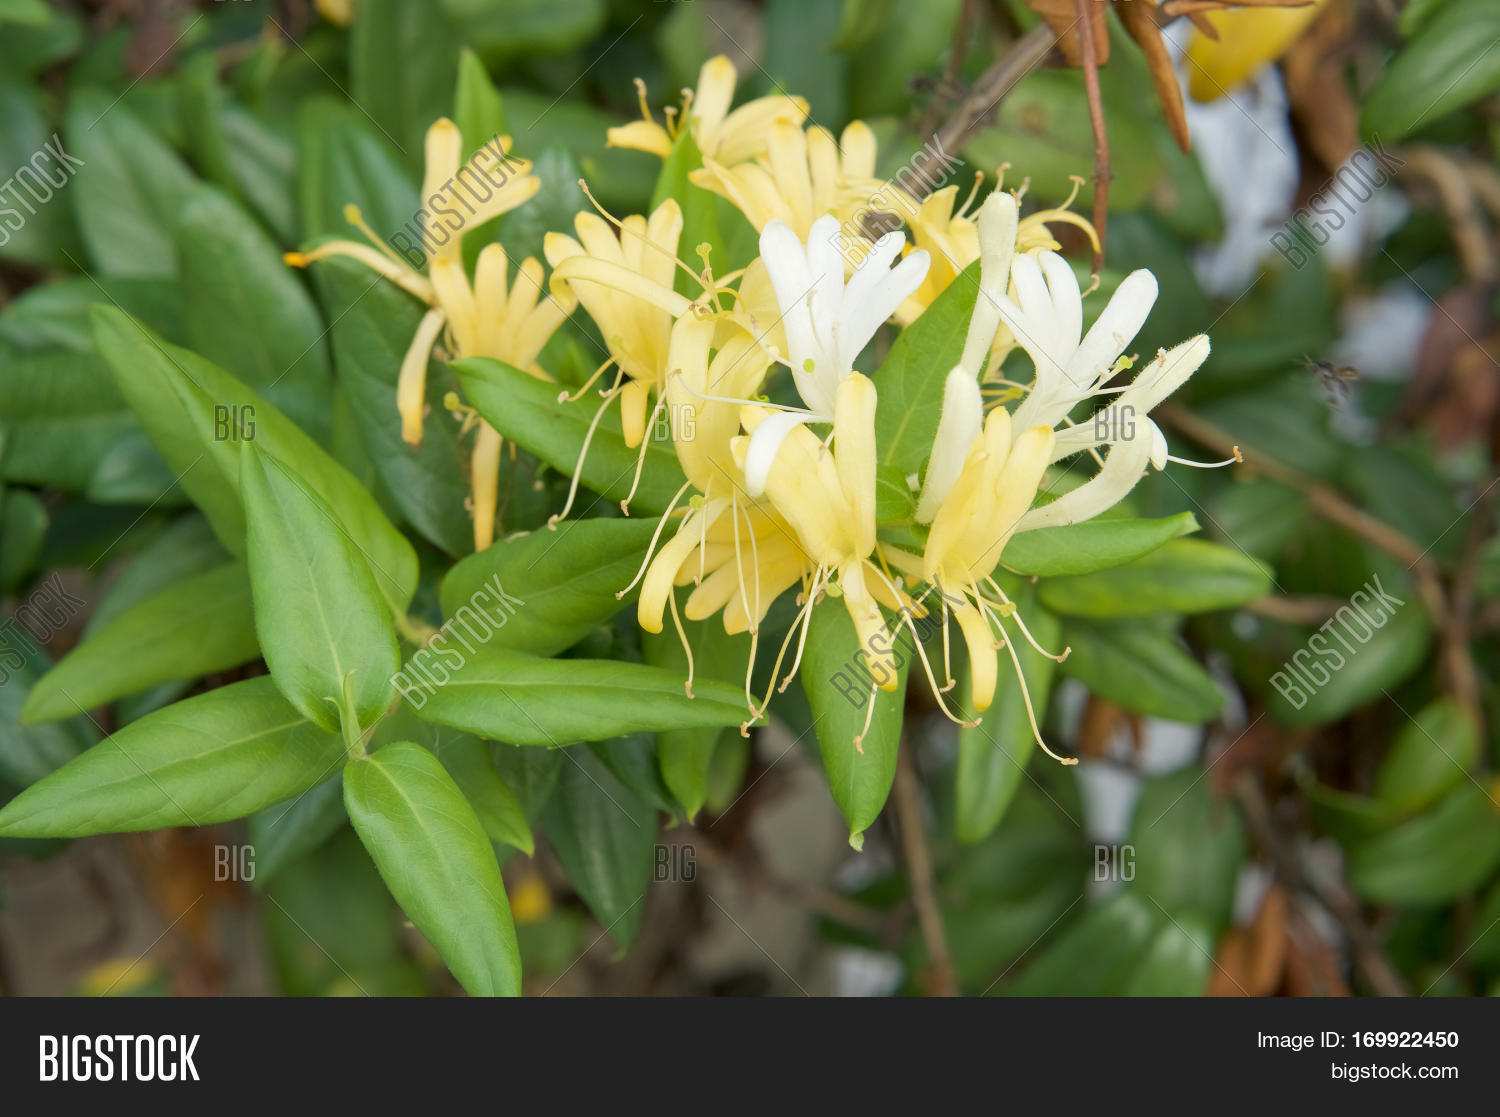 Lonicera Japonica Image Photo Free Trial Bigstock